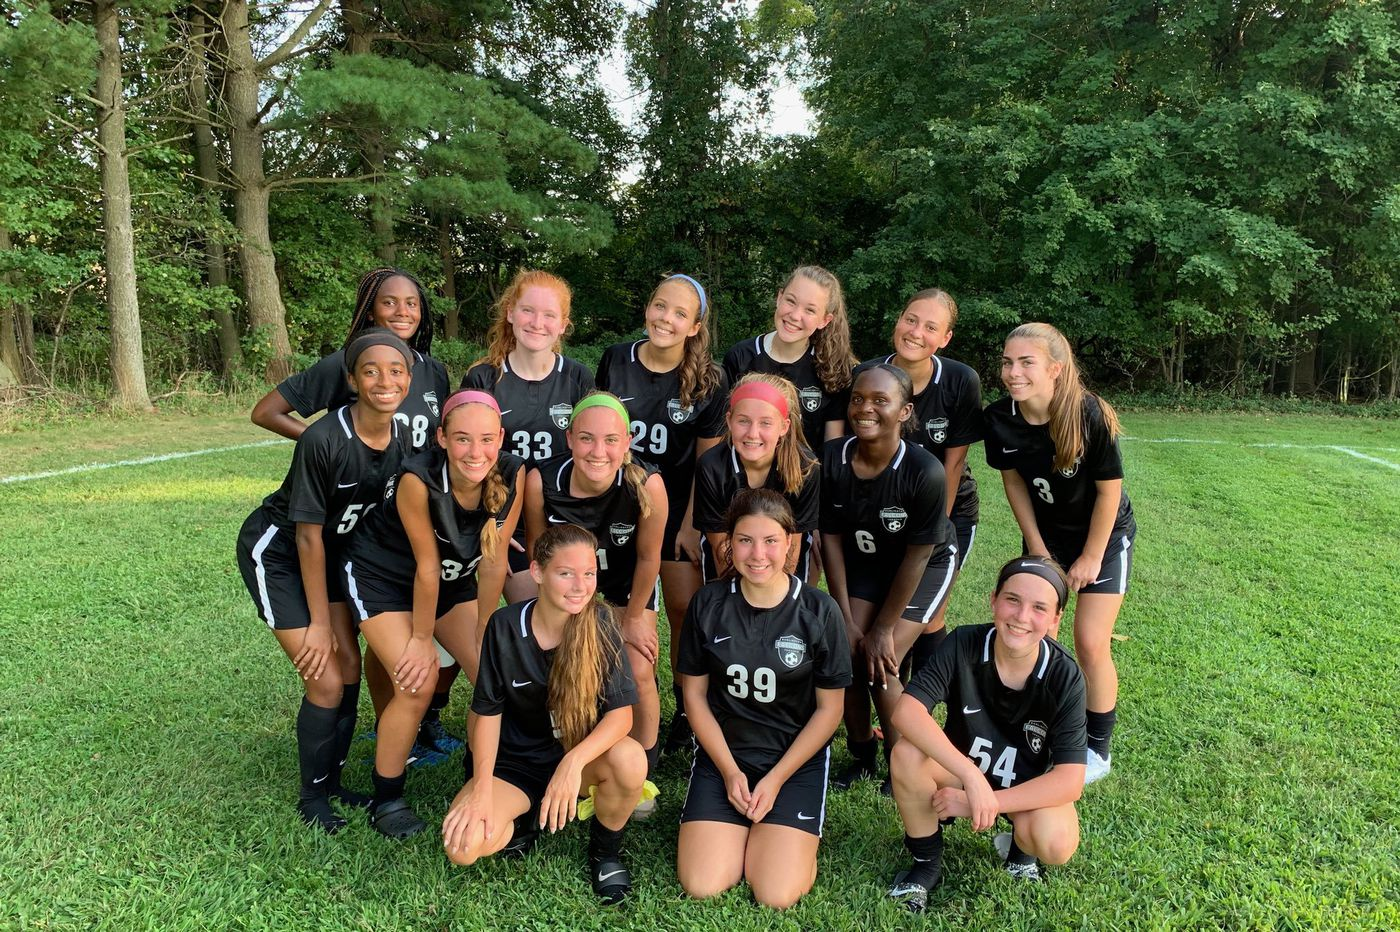 Wednesday's South Jersey roundup: Ava Carlson's 14 saves lead Moorestown Friends past Riverside